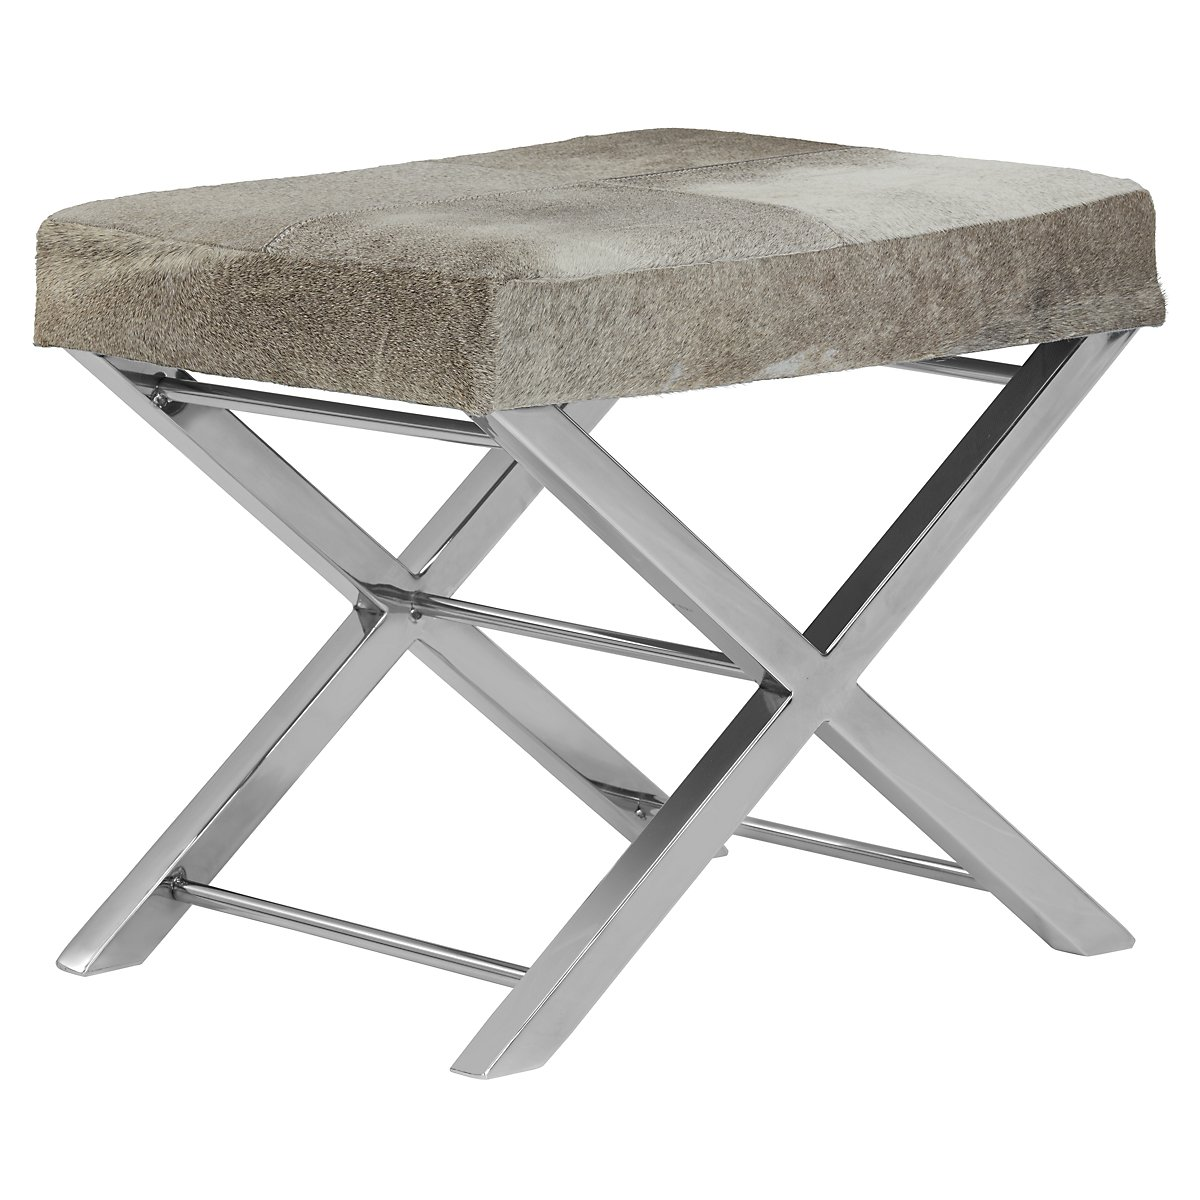 city furniture asher gray leather accent stool - asher gray leather accent stool view larger